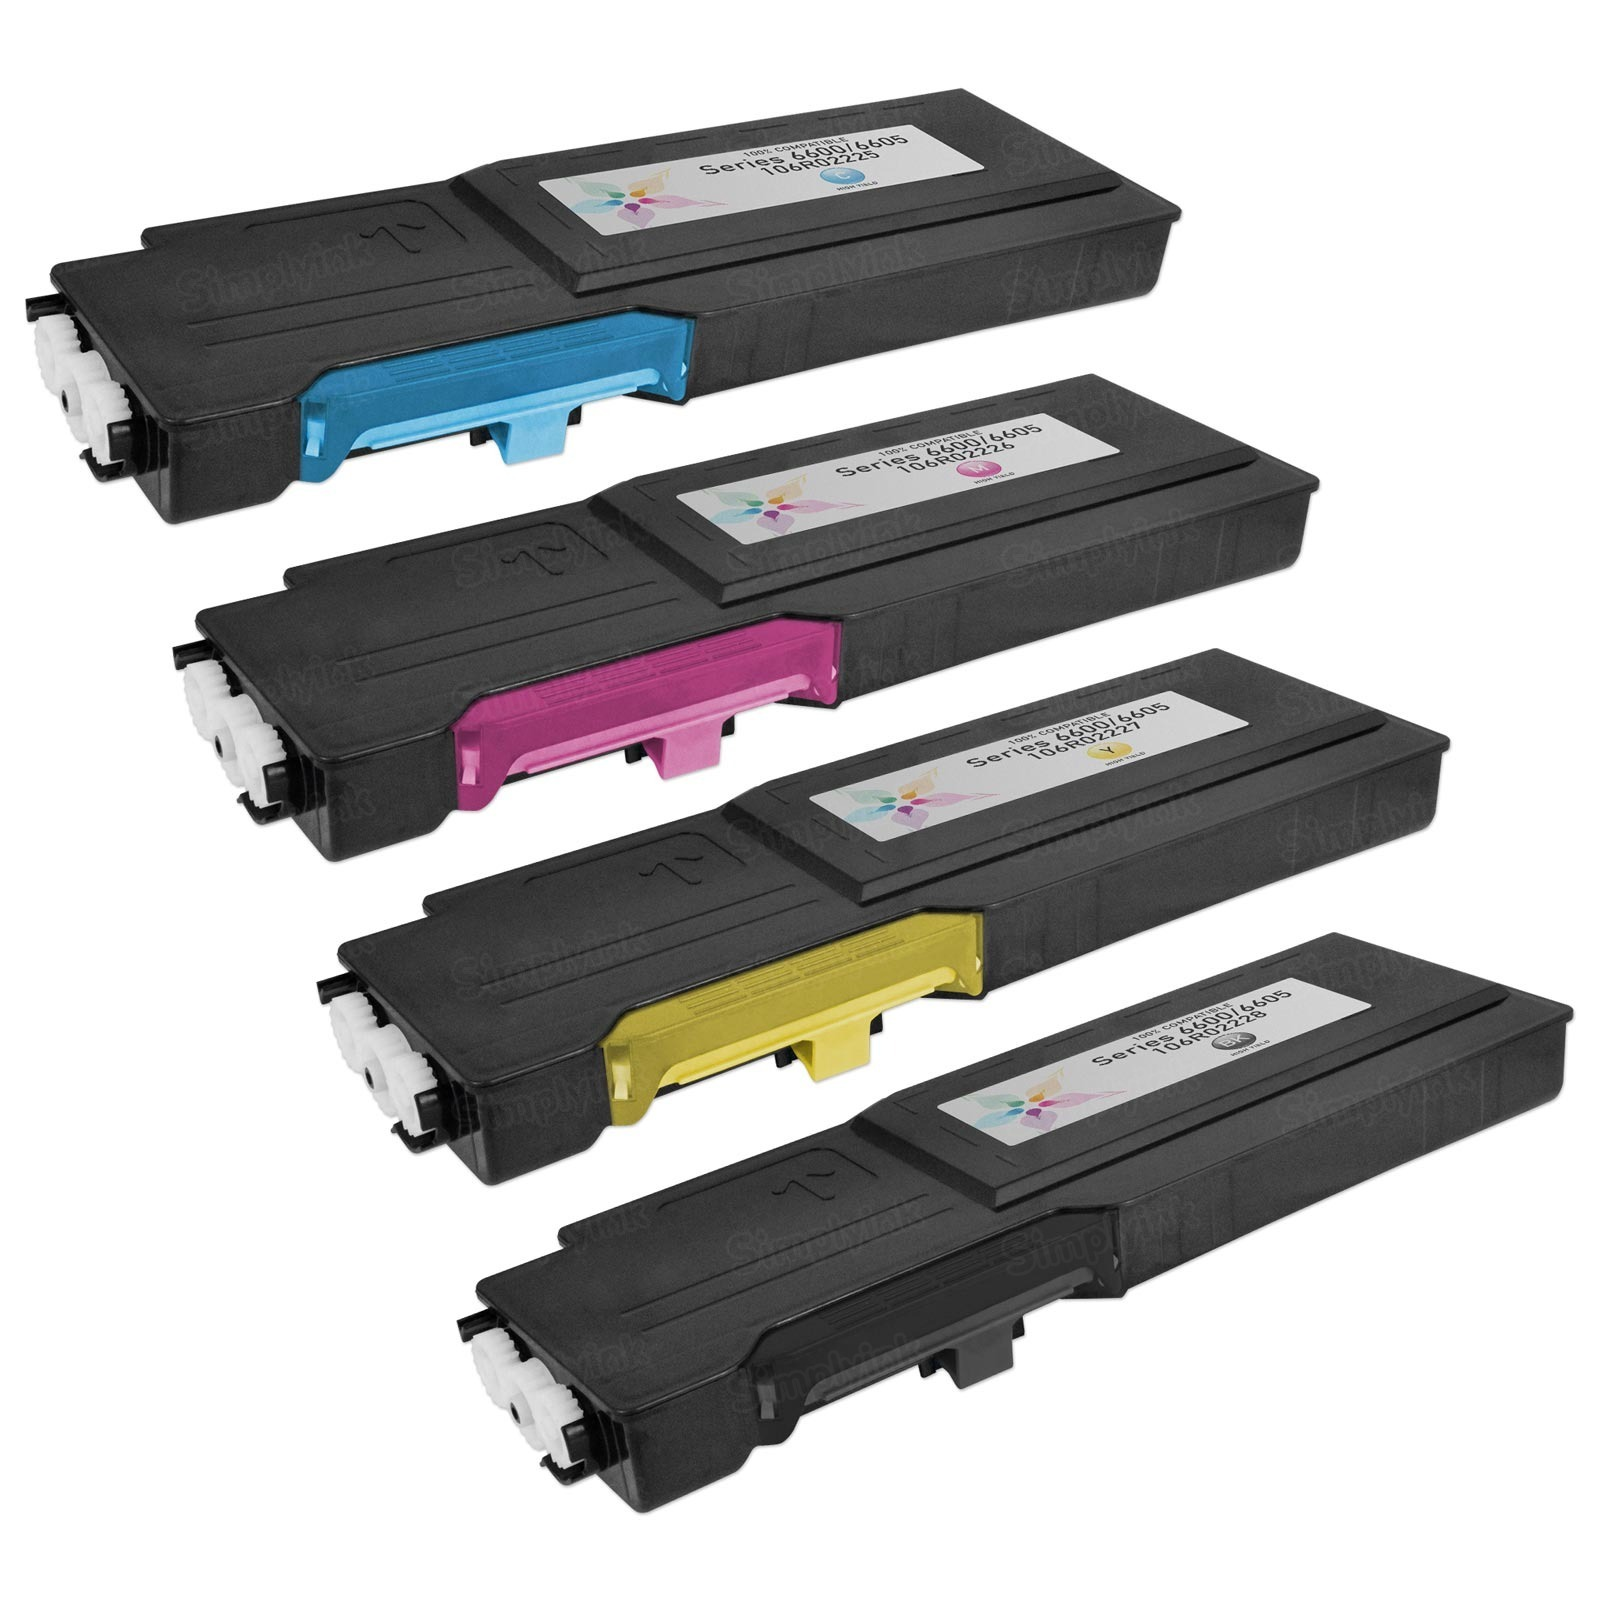 Compatible Xerox Phaser 6600, WorkCentre 6605 HY Black, Cyan, Magenta and Yellow